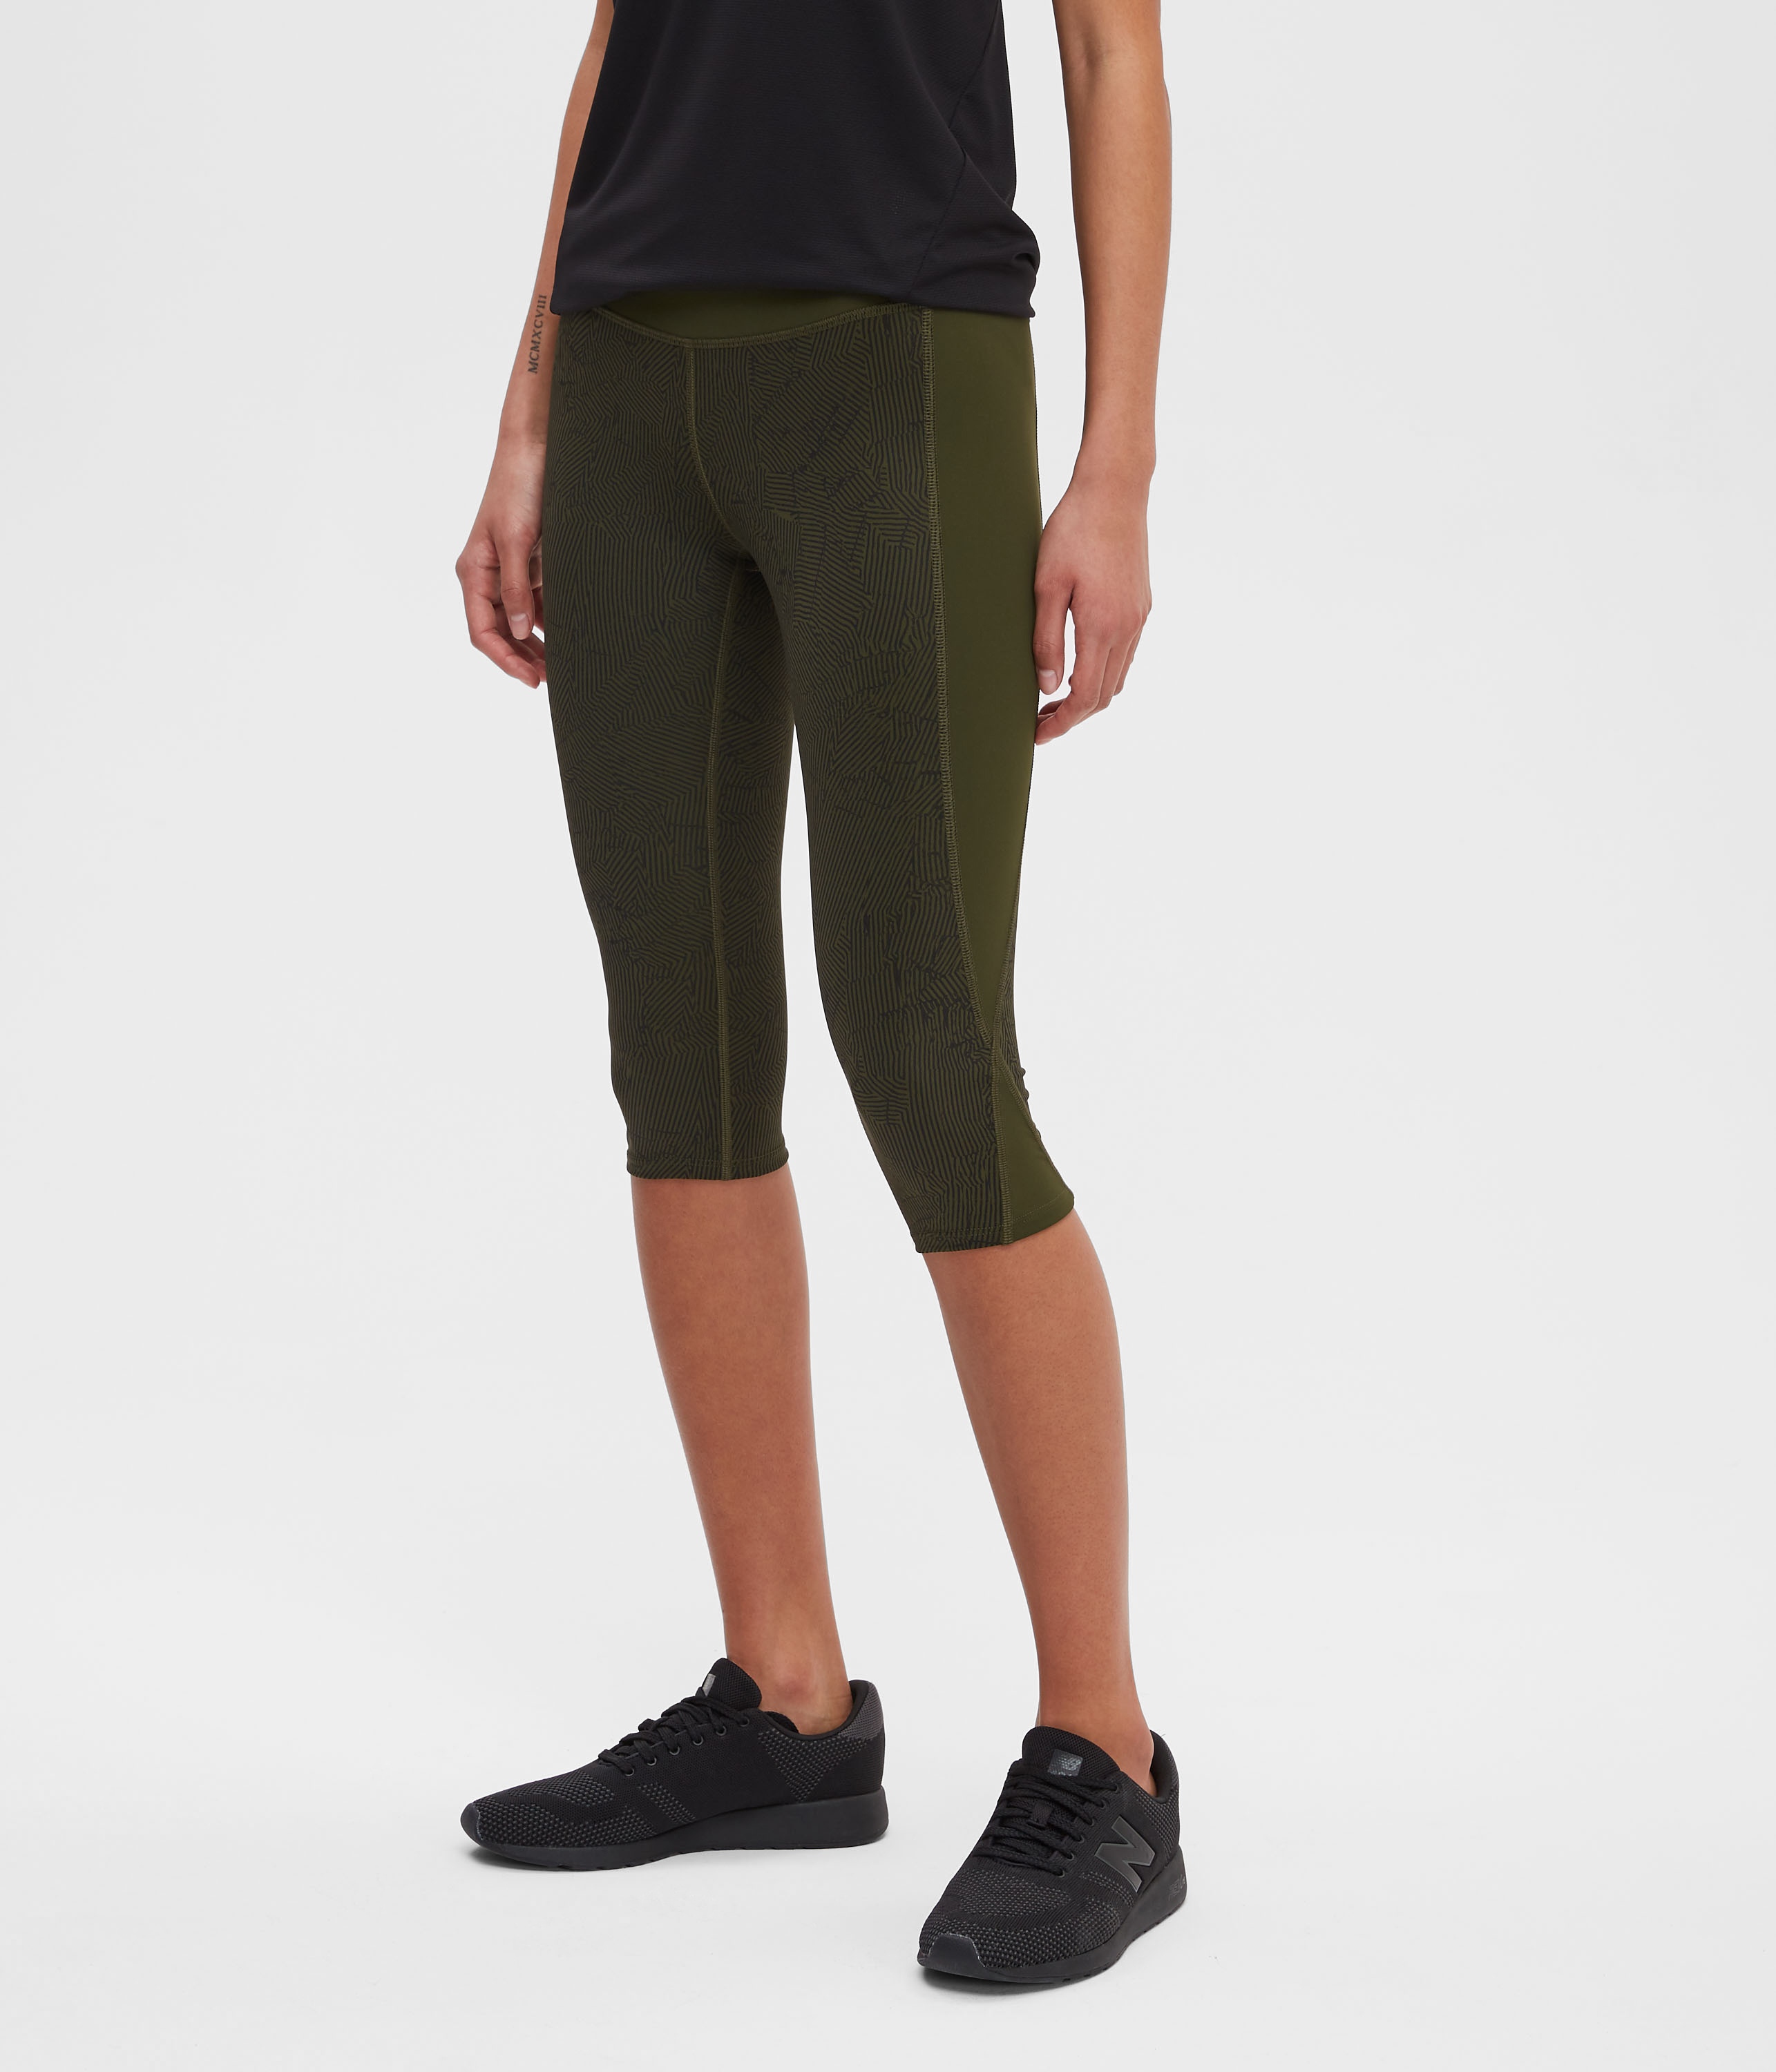 522d05928831f Running and fitness clothing | MEC